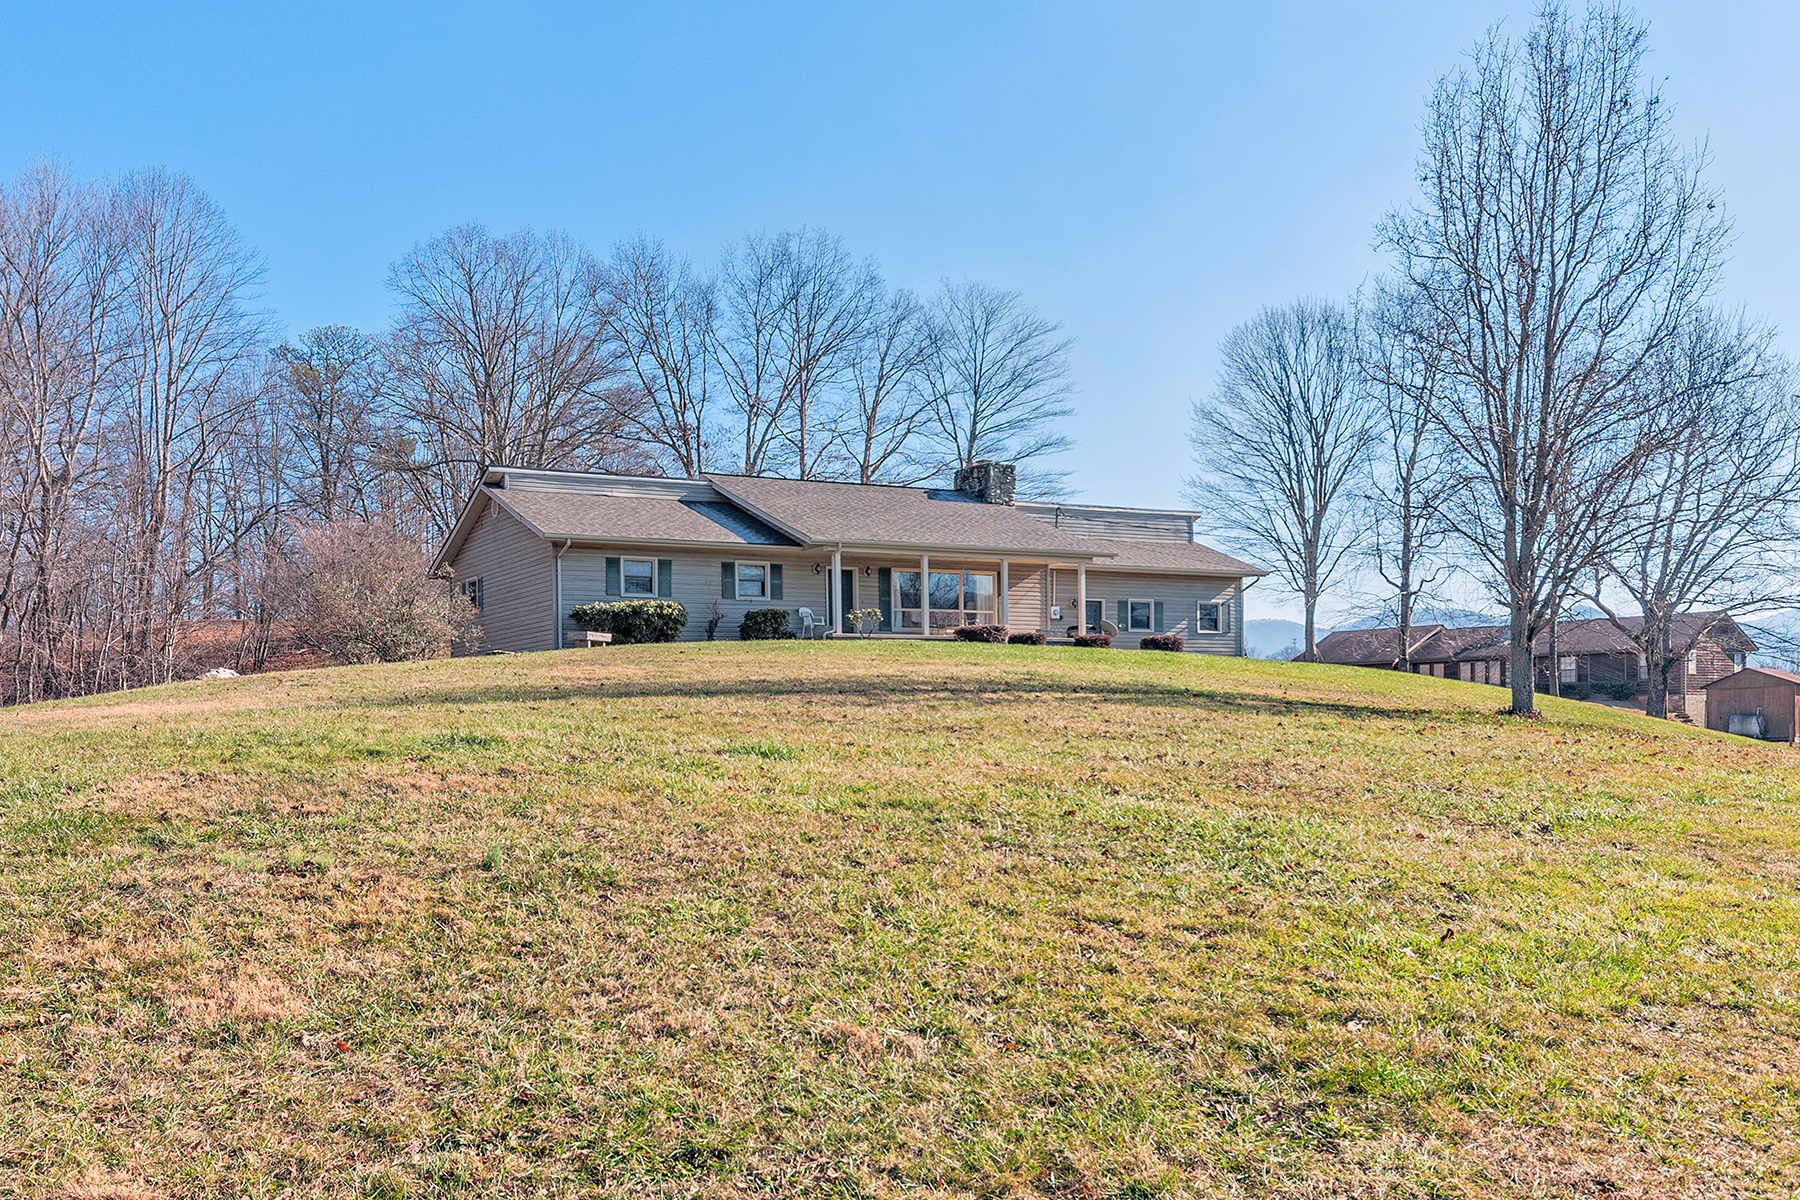 Single Family Home for Sale at PRIVATE MINI FARM 320 Pisgah Hwy, Candler, North Carolina 28715 United States